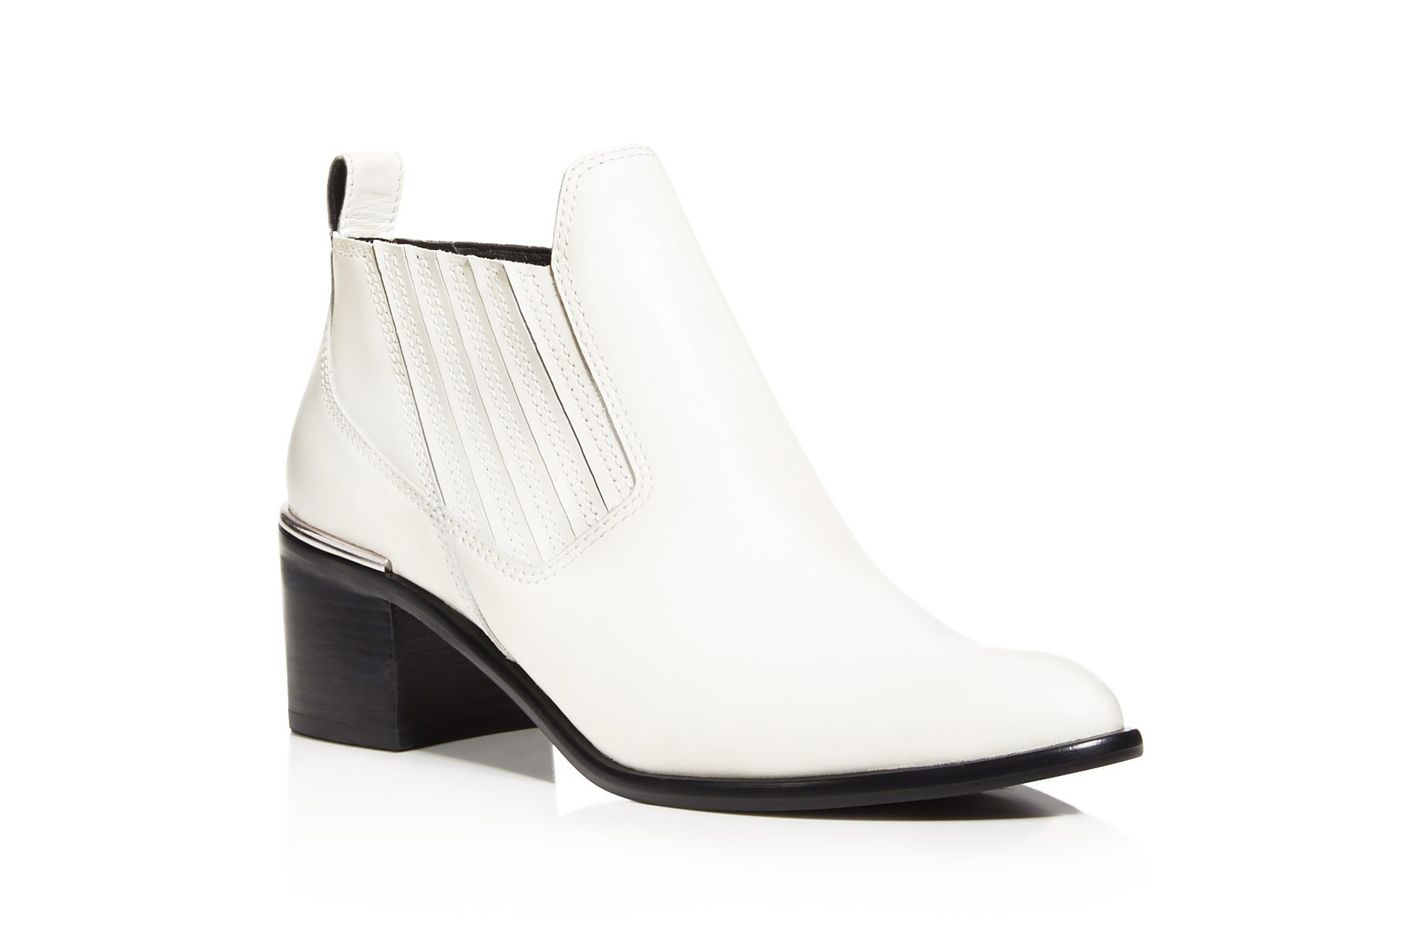 Dolce Vita 'Percey' Boots